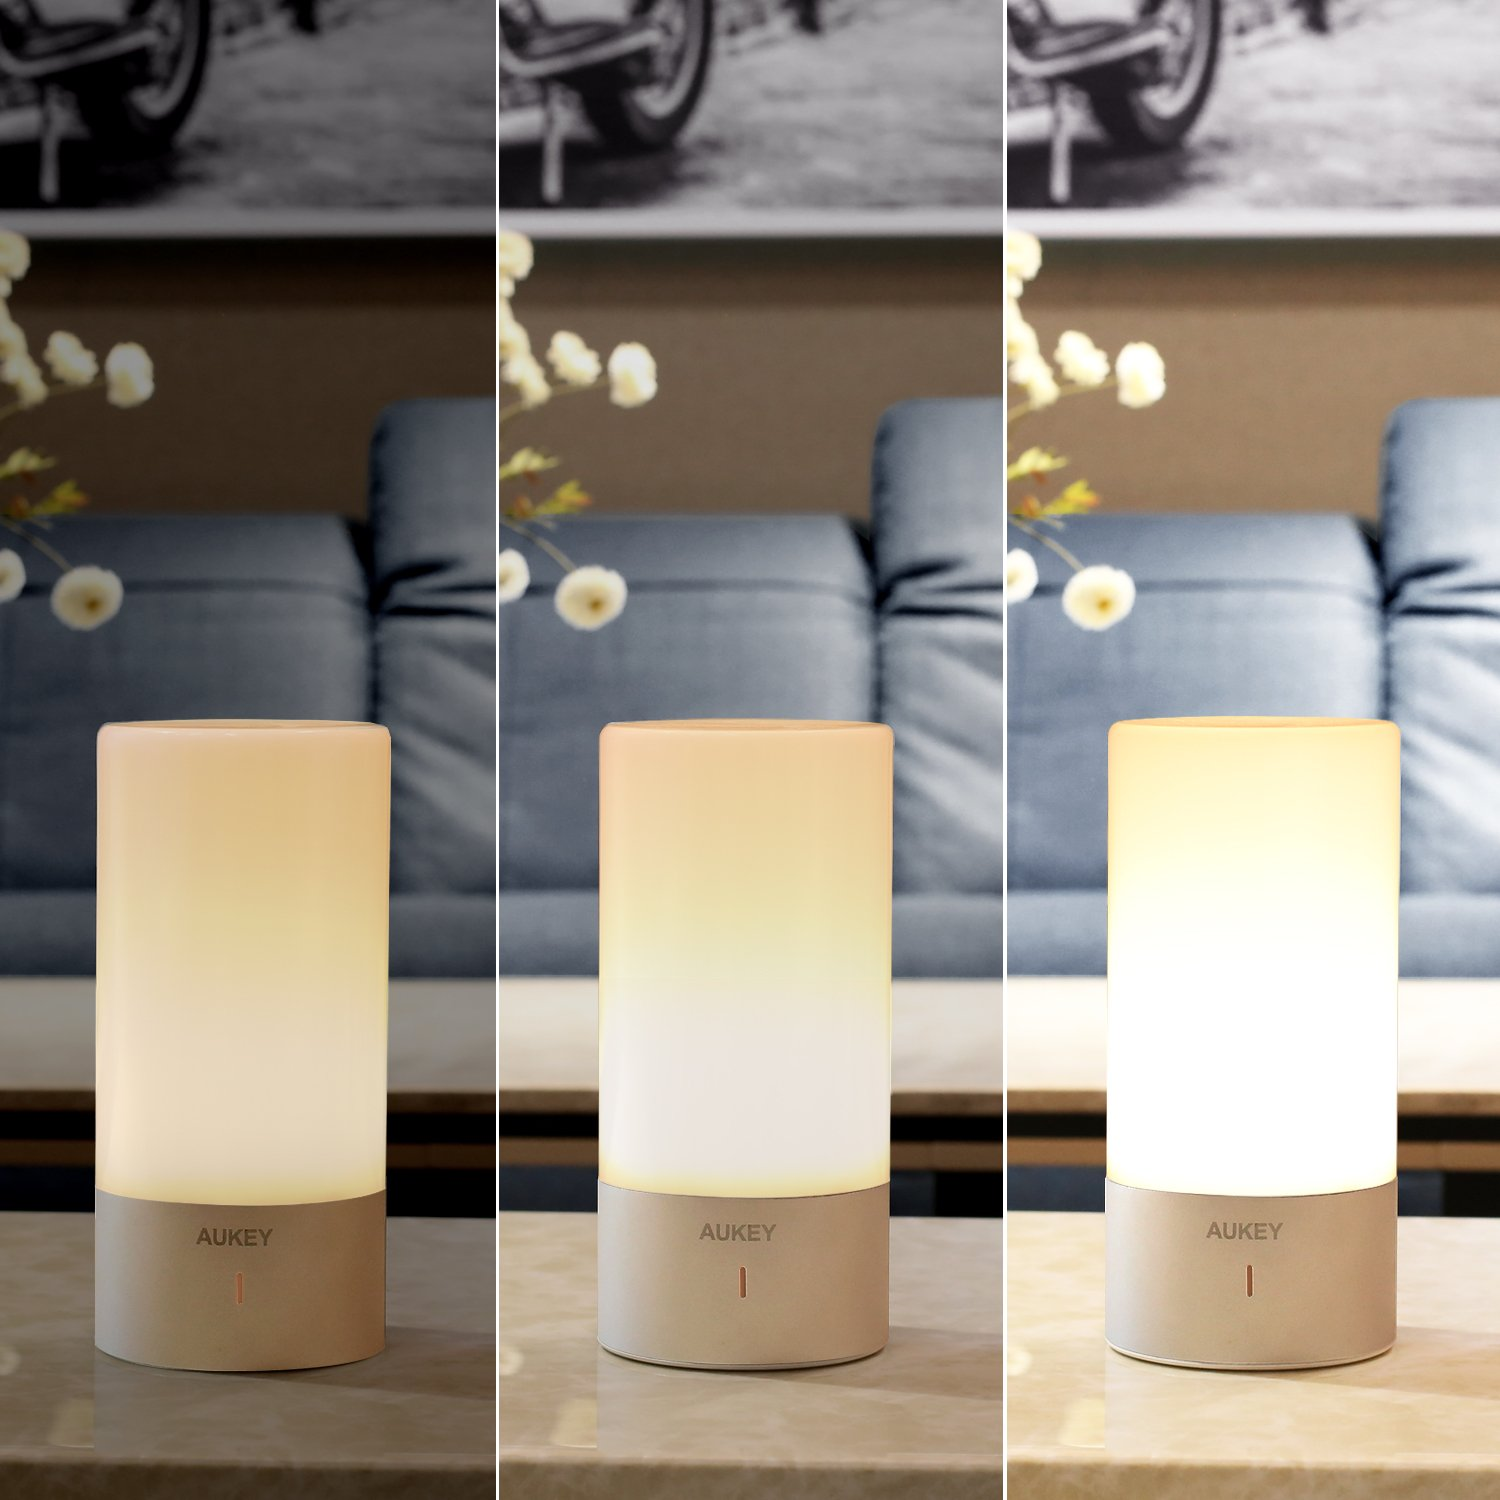 AUKEY Table Lamp, Touch Sensor Bedside Lamps + Dimmable Warm White Light & Color Changing RGB for Bedrooms by AUKEY (Image #3)